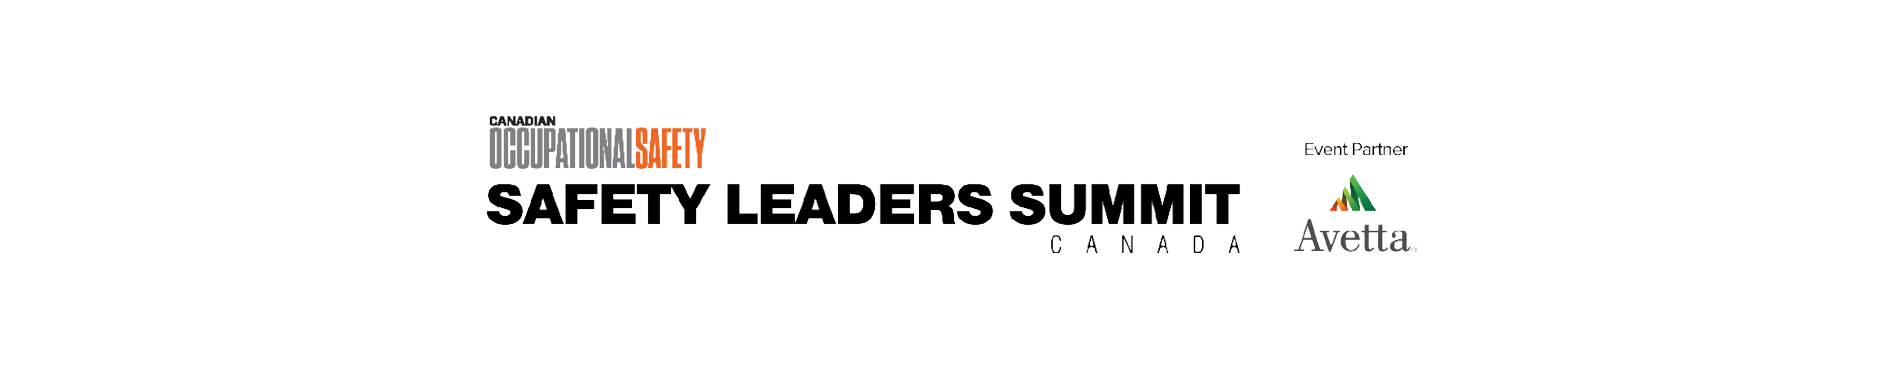 Safety Leaders Summit Canada